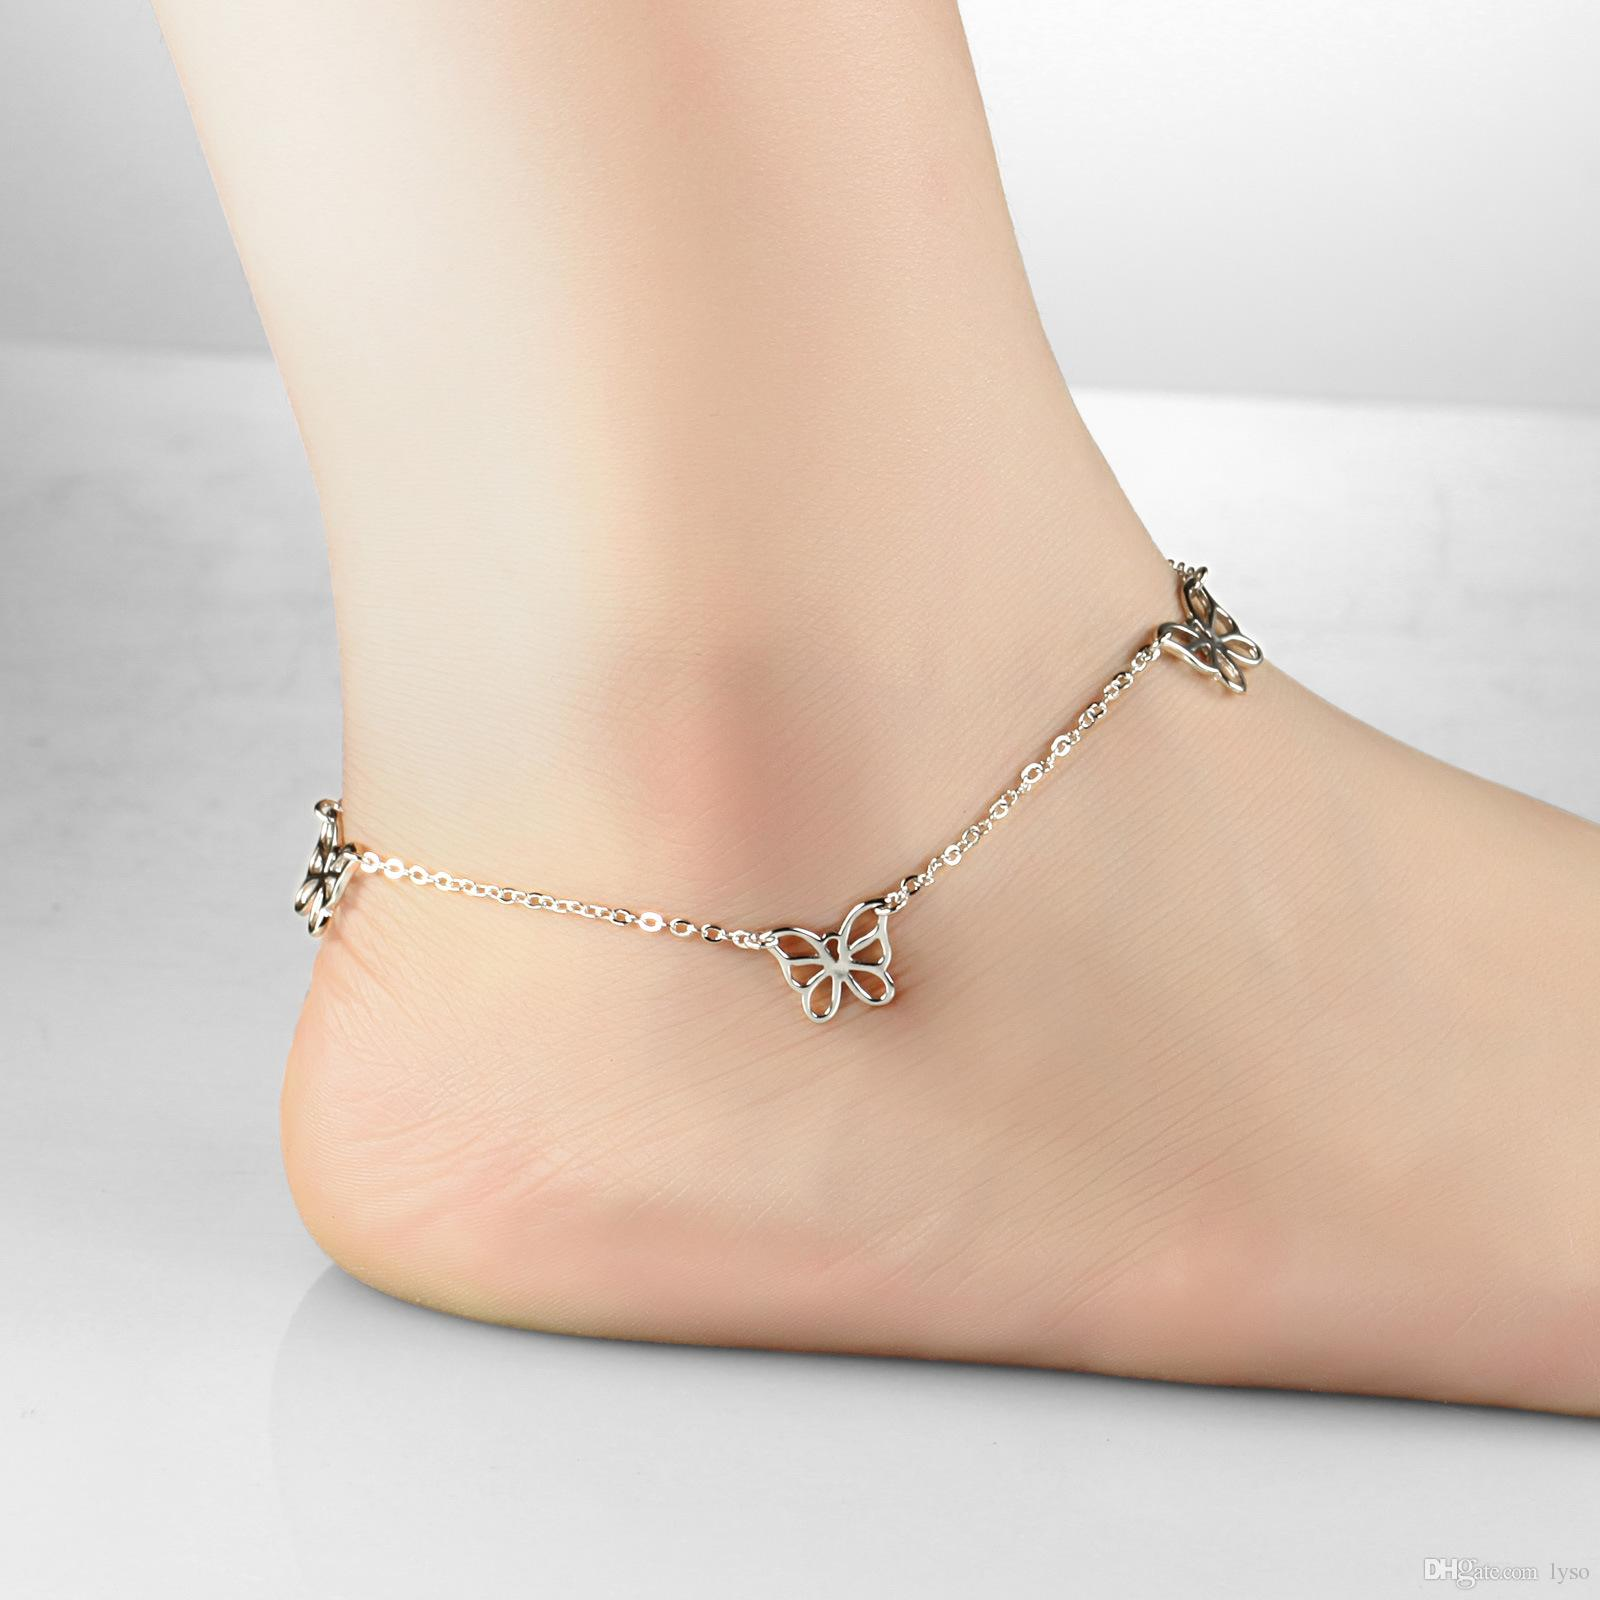 wrap chain and tattoos at for com pin ankle female tattoo mybodiart anklet feather women ideas around